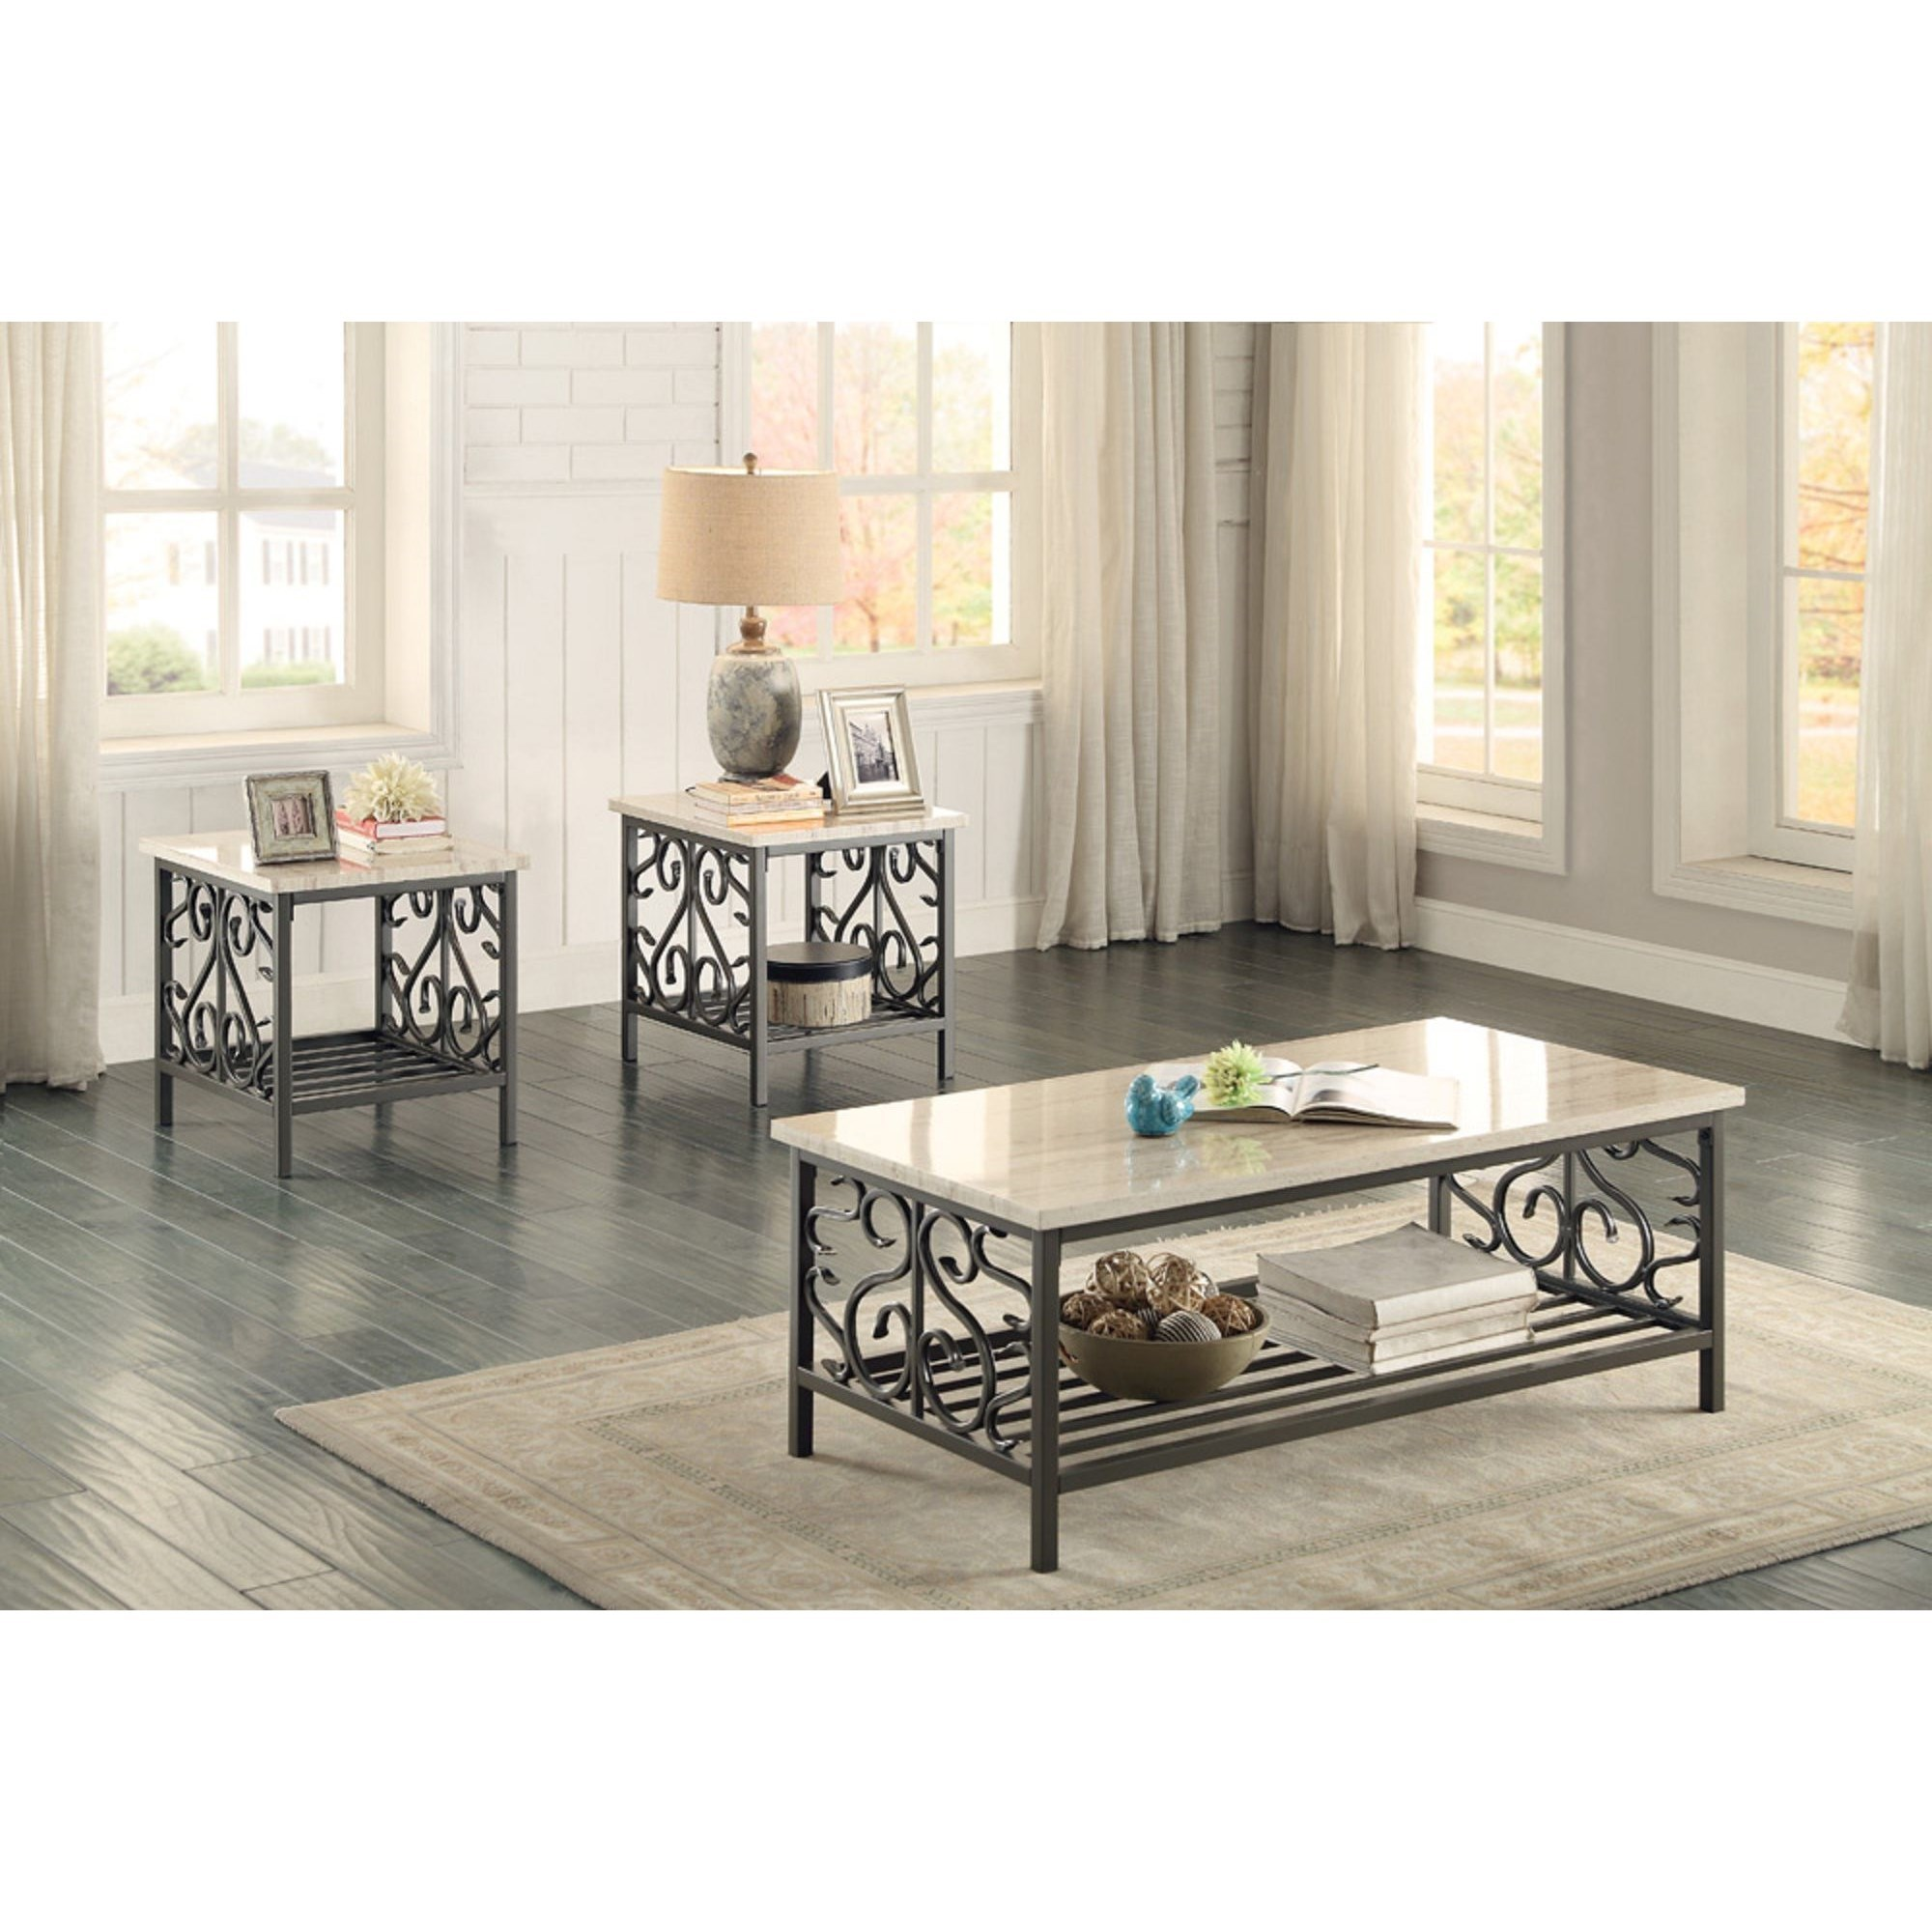 Fairhope 3Pc Occasional Table Group by Homelegance at Beck's Furniture